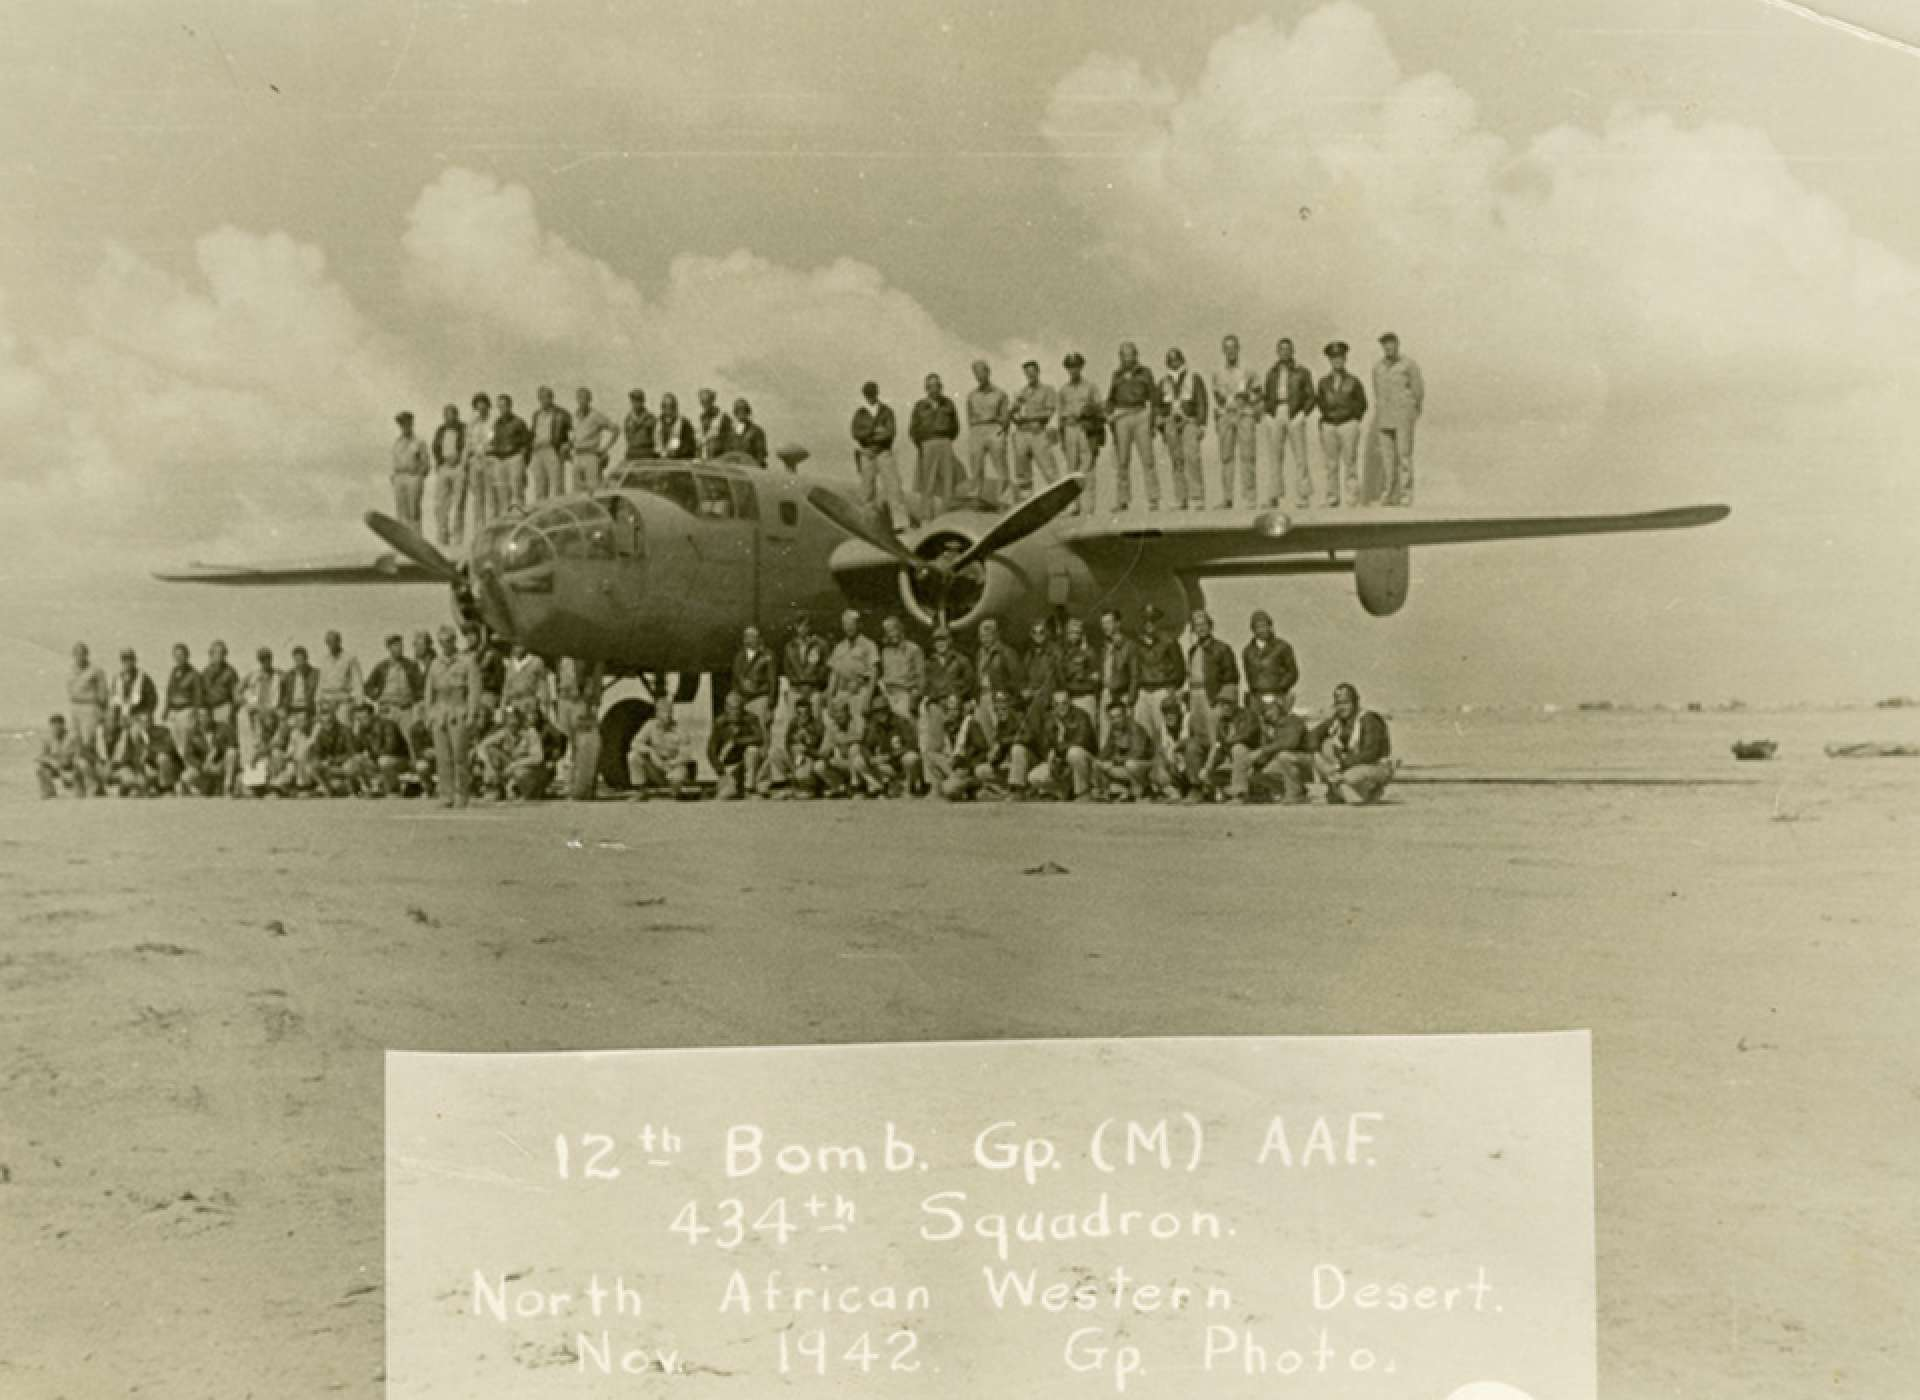 12th Bomb Group